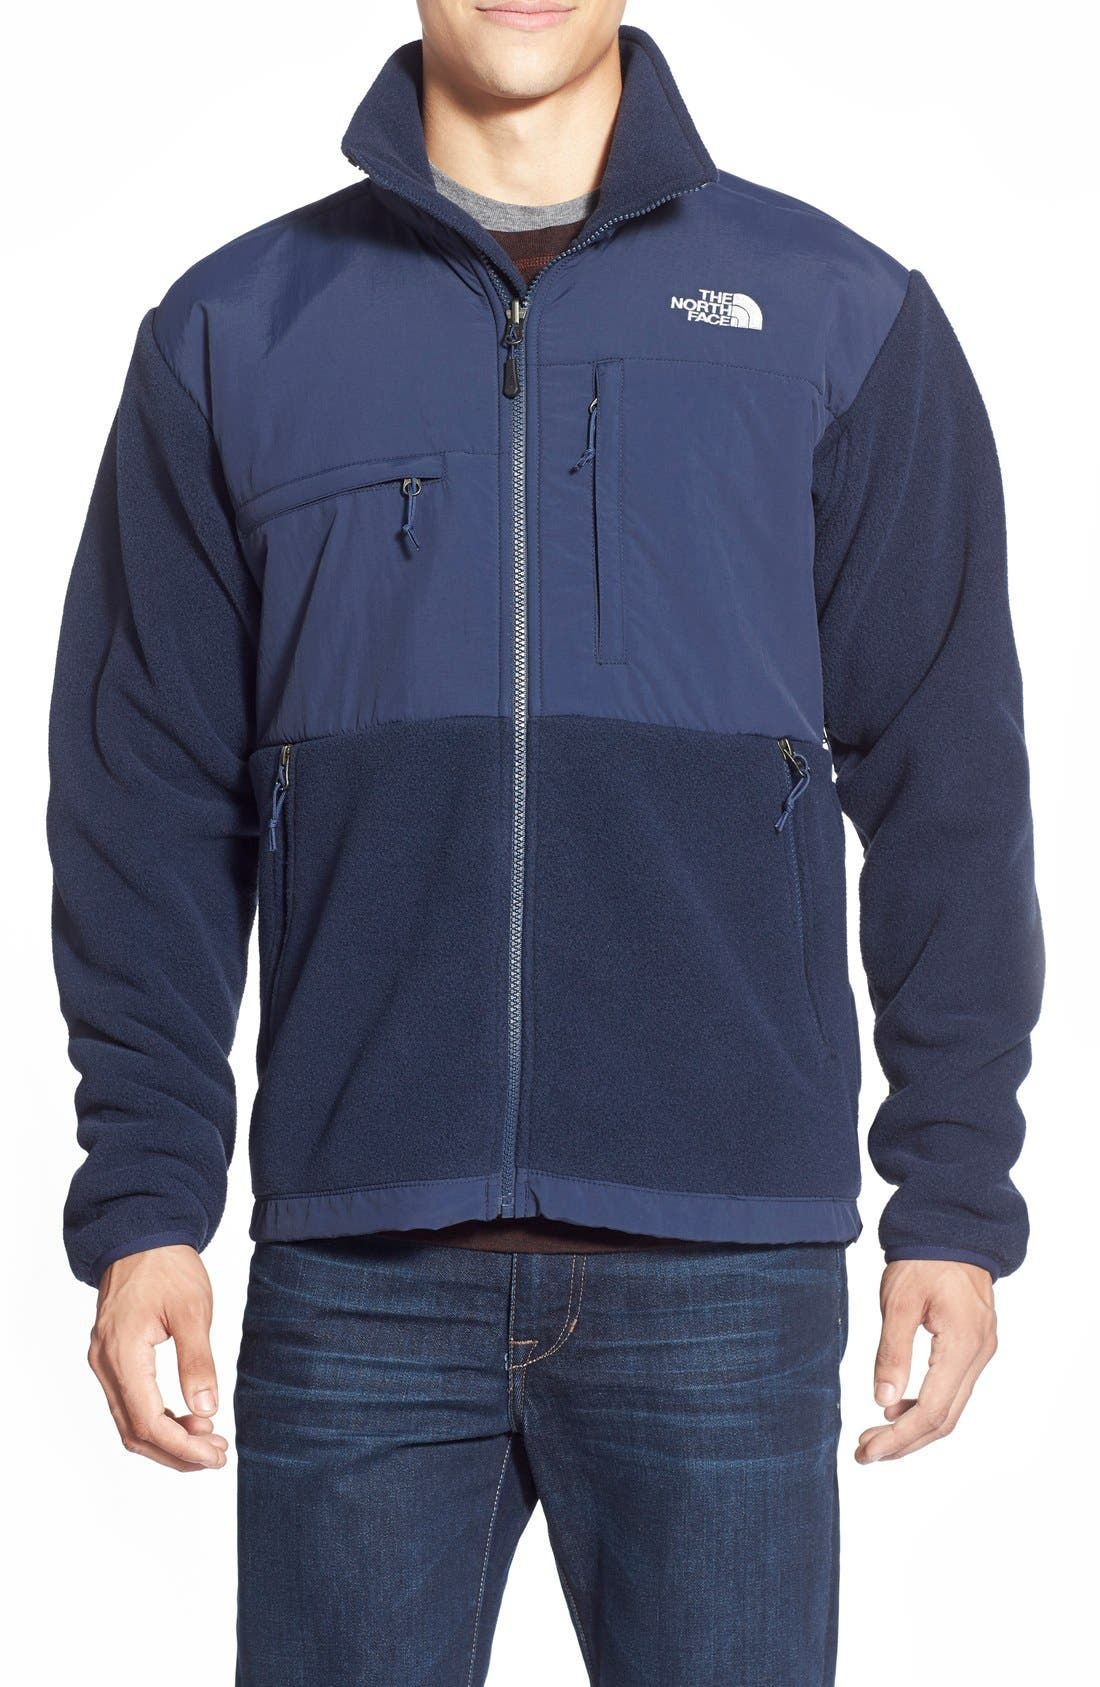 Main Image - The North Face 'Denali' Recycled Polartec 300® Fleece Jacket